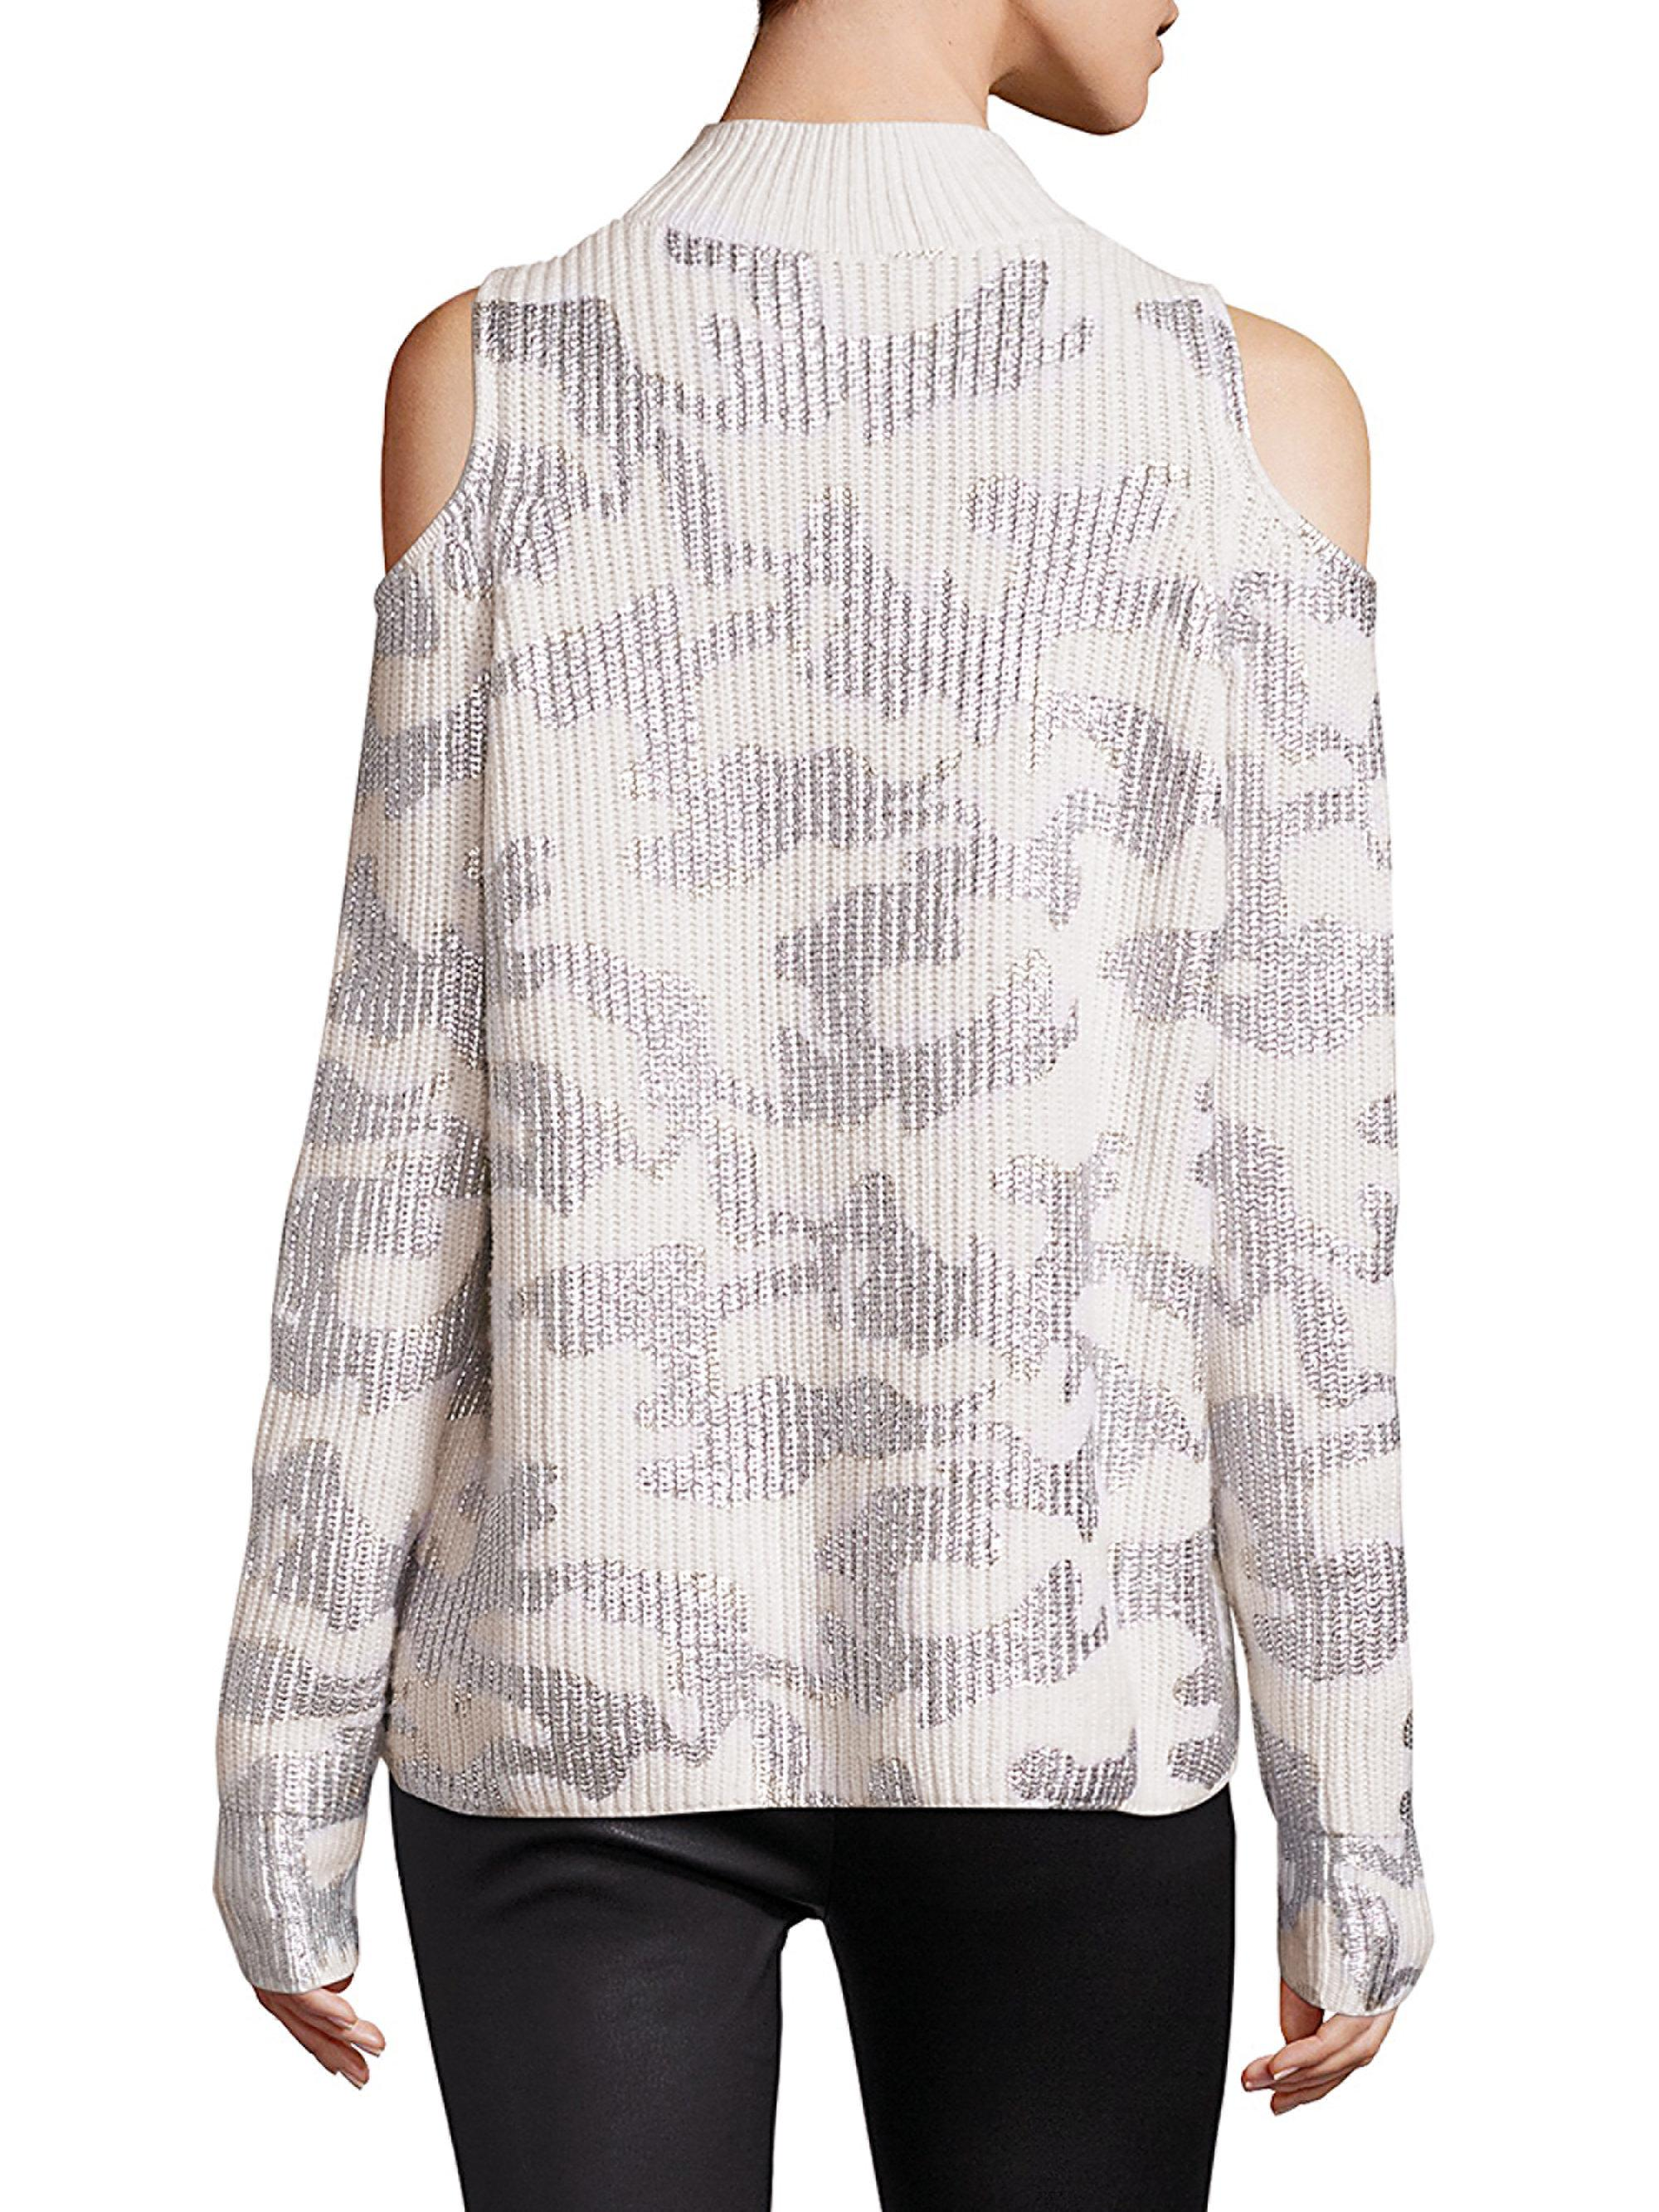 dc1f10a9cefb33 Lyst - Zoe Jordan Hawking Cold-shoulder Sweater in White